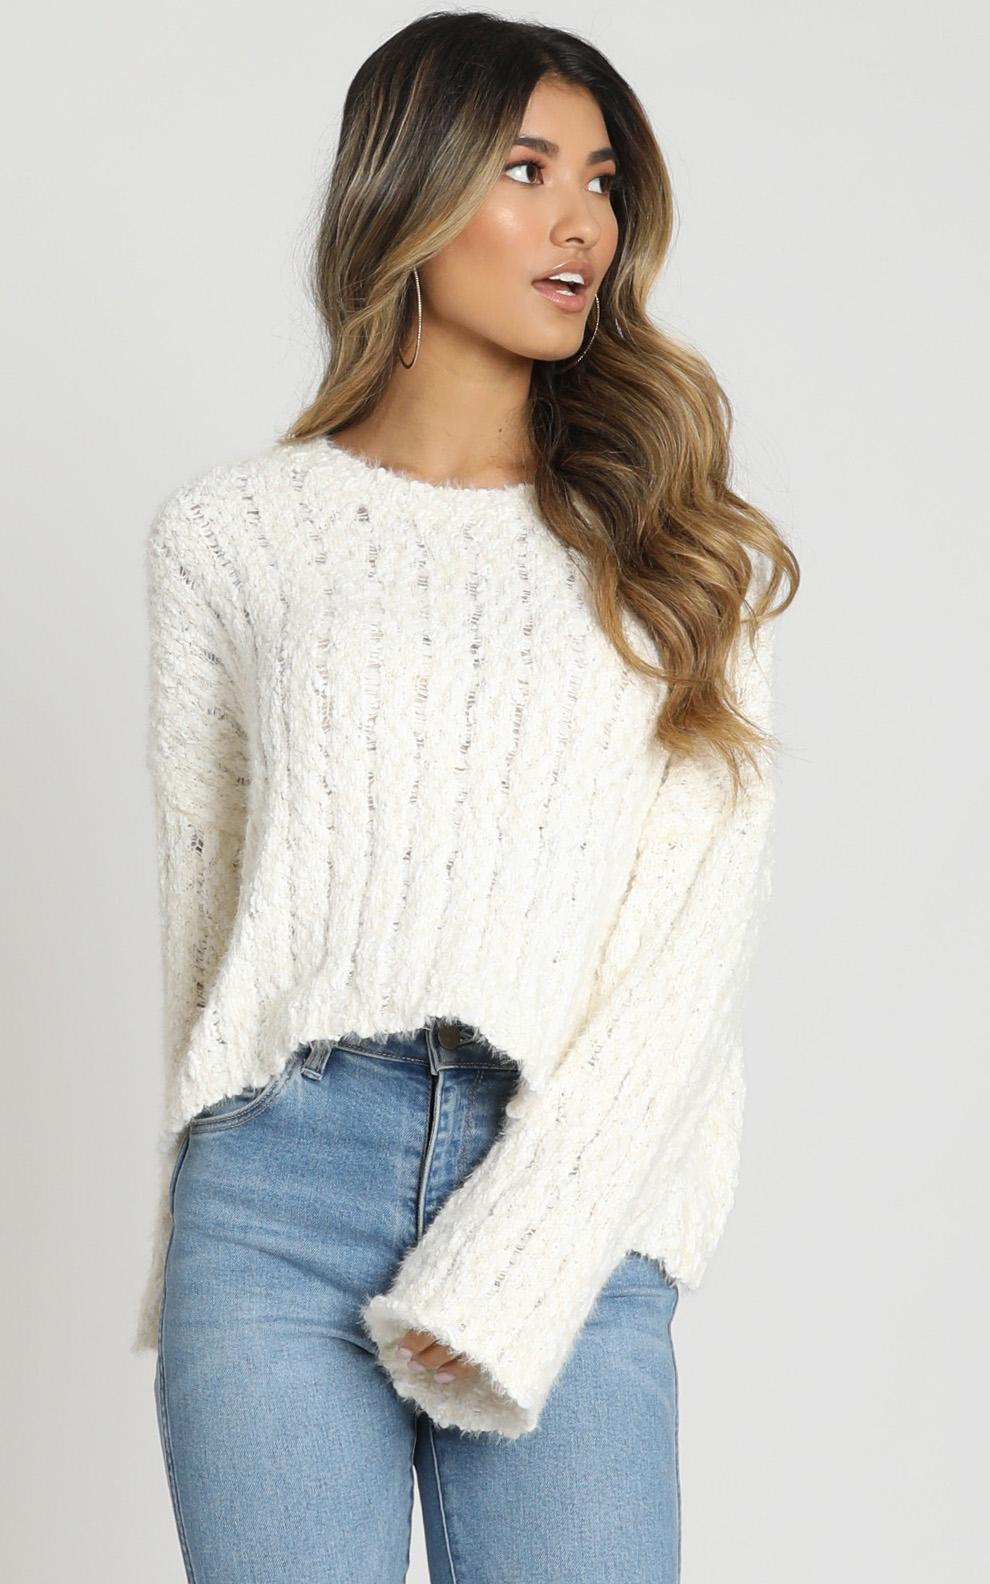 Bethen Fluffy Knit in ivory - M/L, White, hi-res image number null